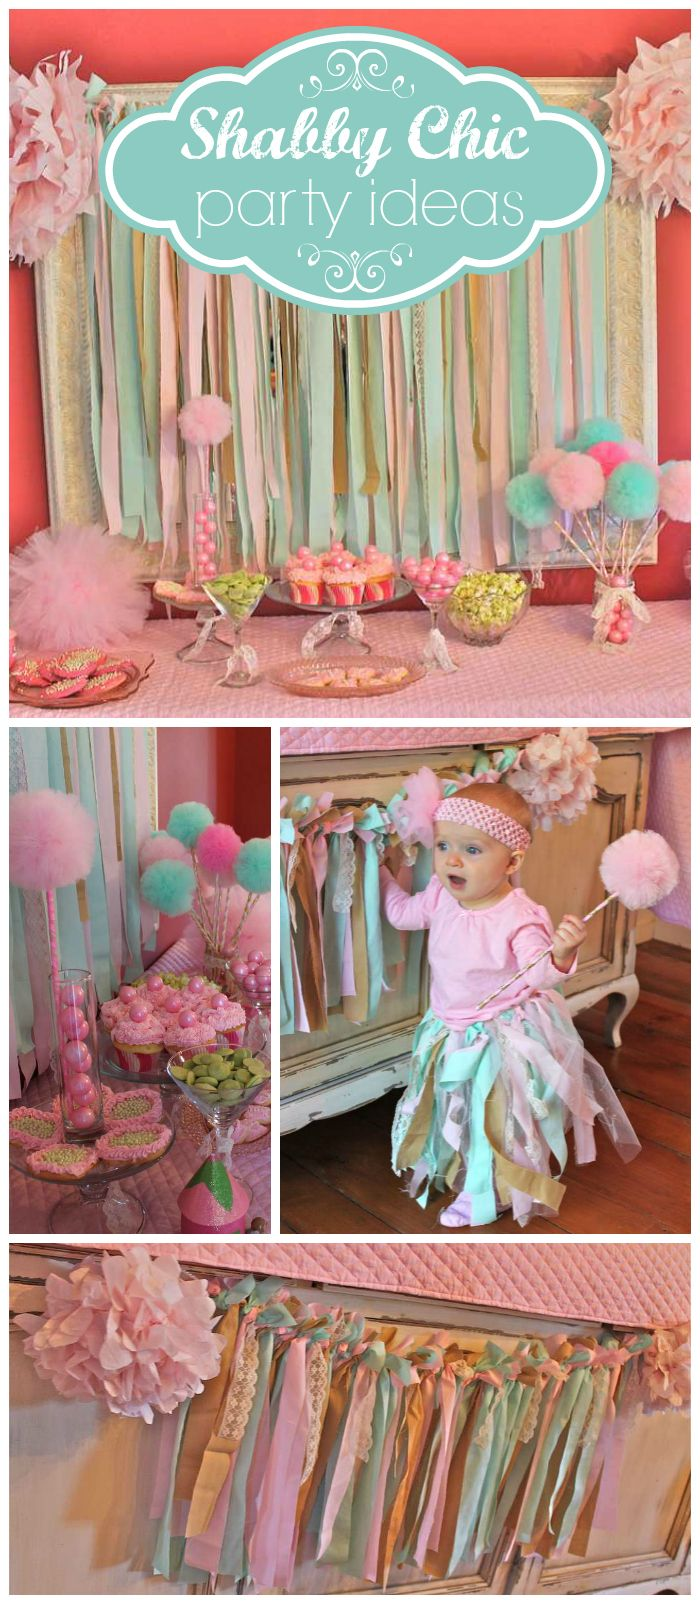 A shabby chic sugarplum fairy first birthday party with a sweets table and pom pom wand party favors! See more party planning ideas at CatchMyParty.com!